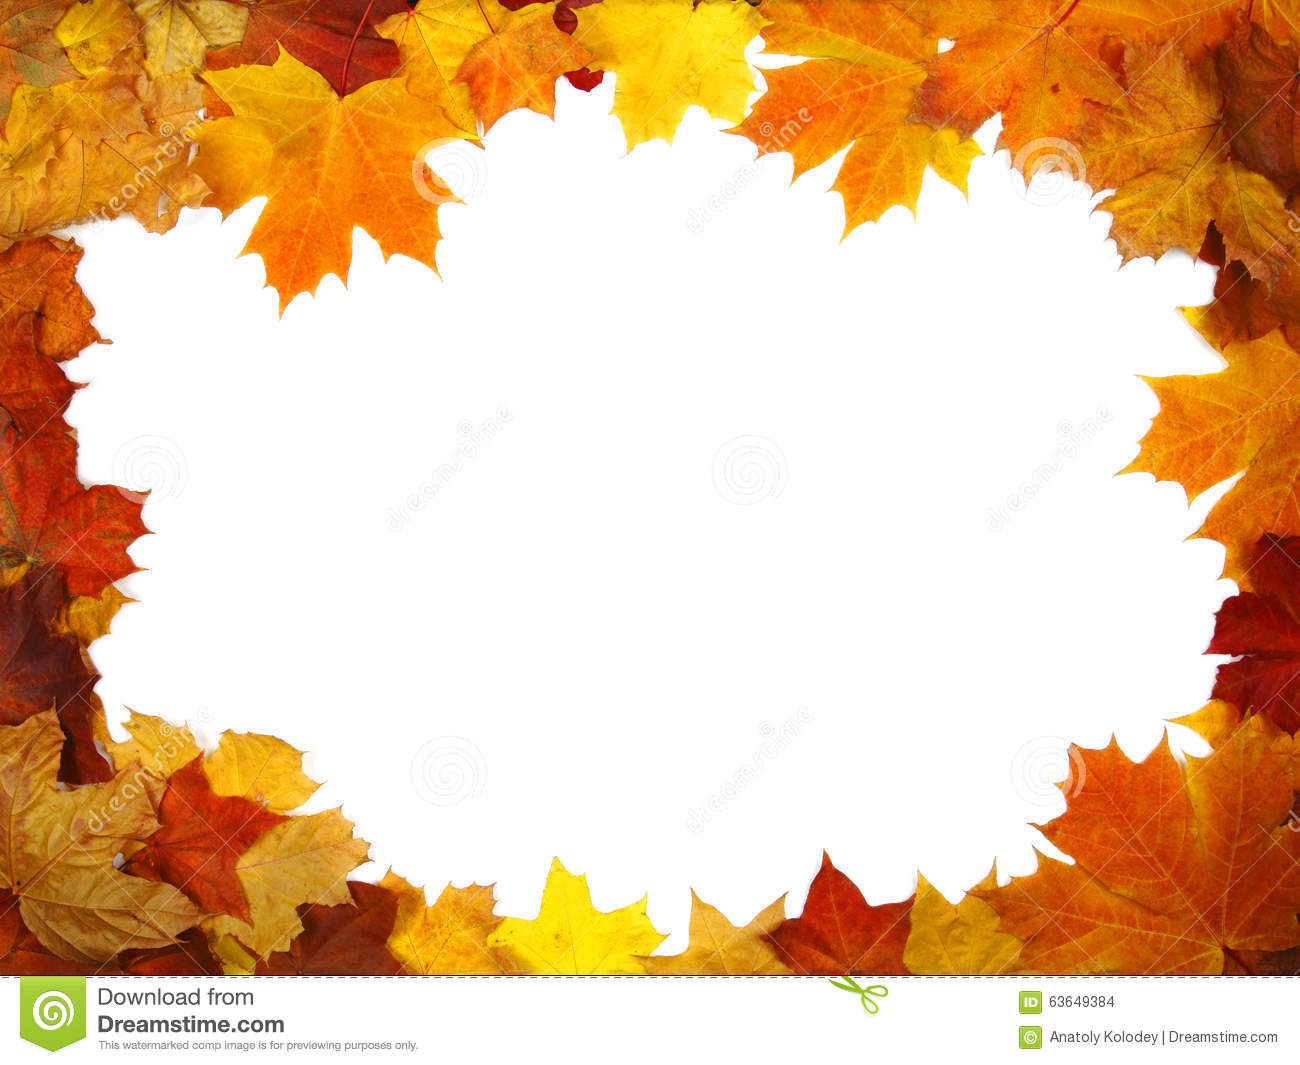 Frame of colorful autumn leaves